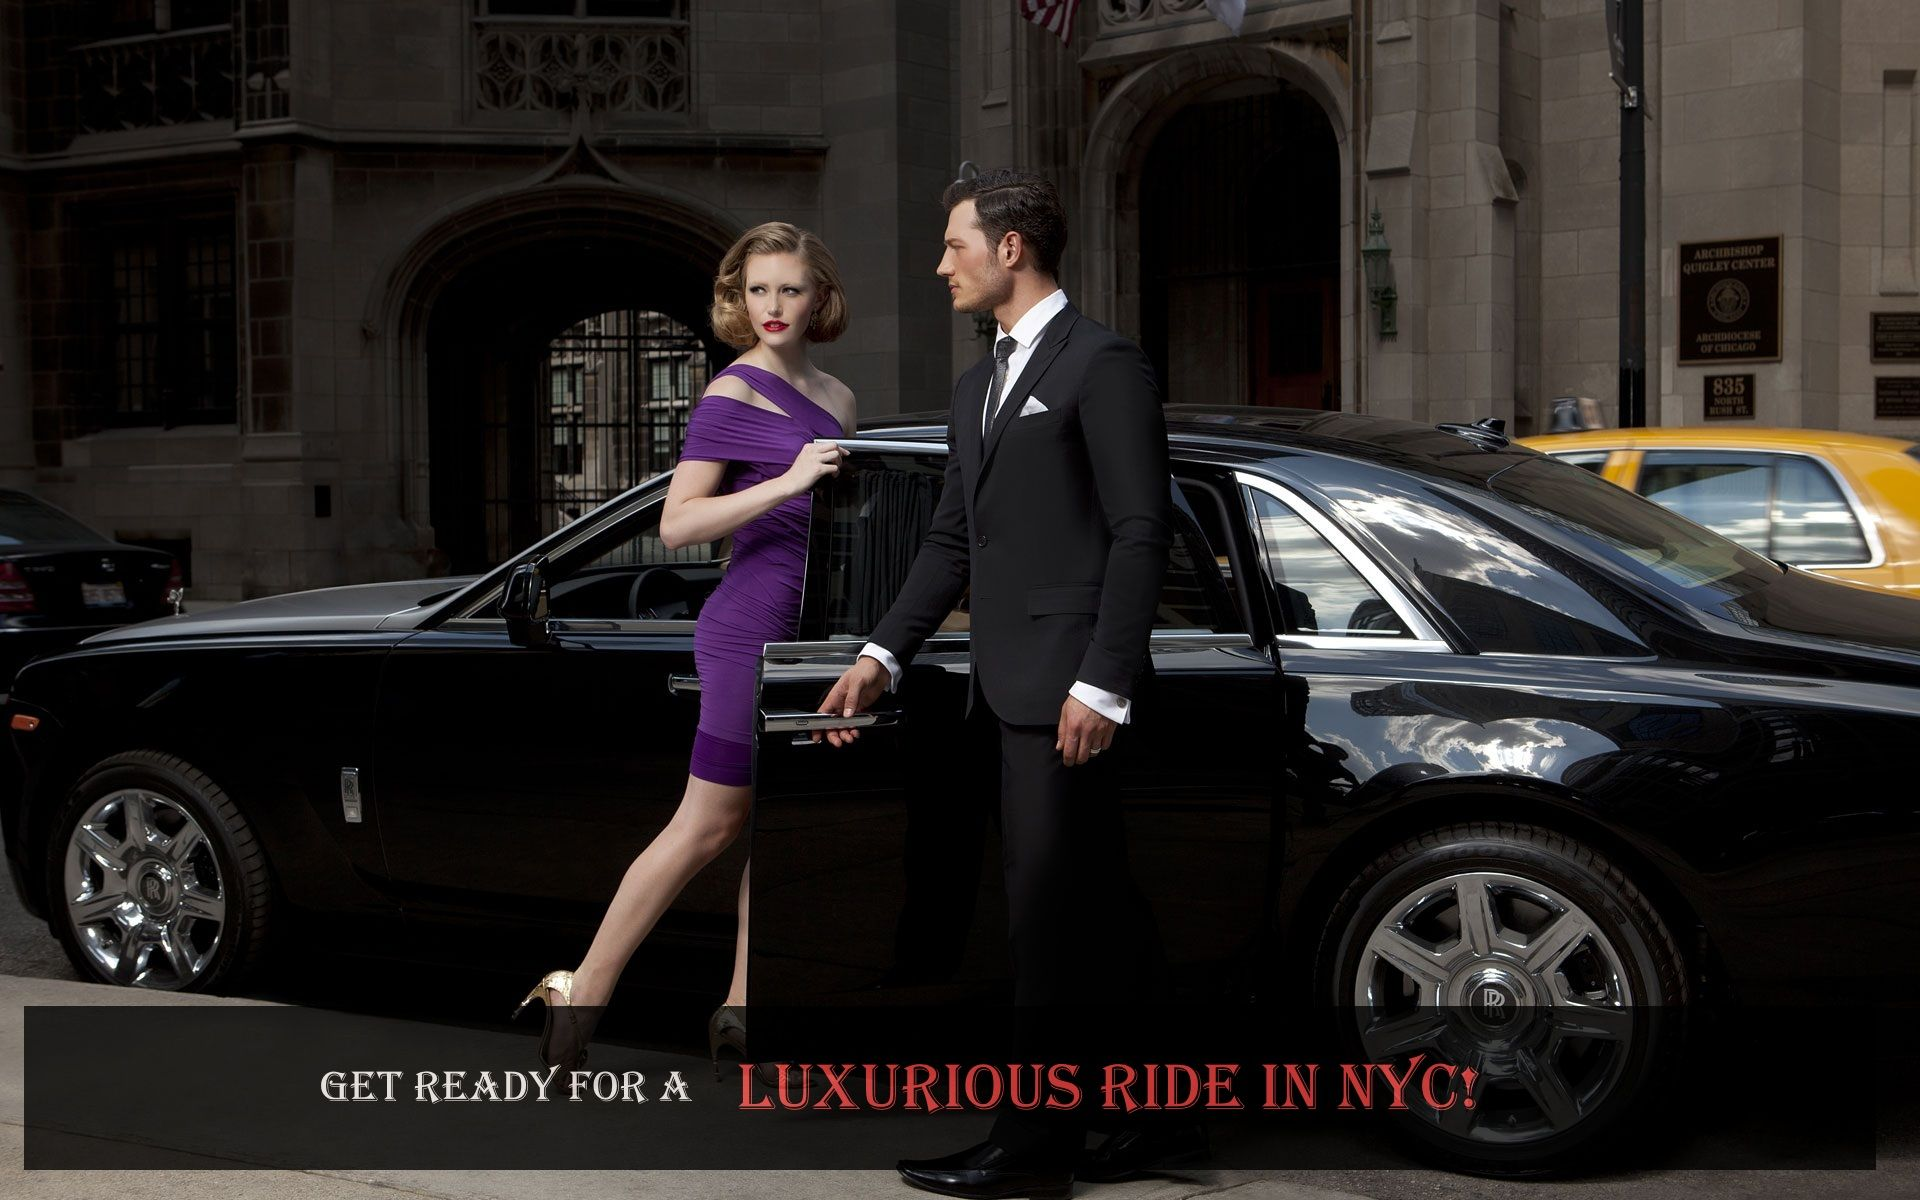 Pin On Limo Service Nyc